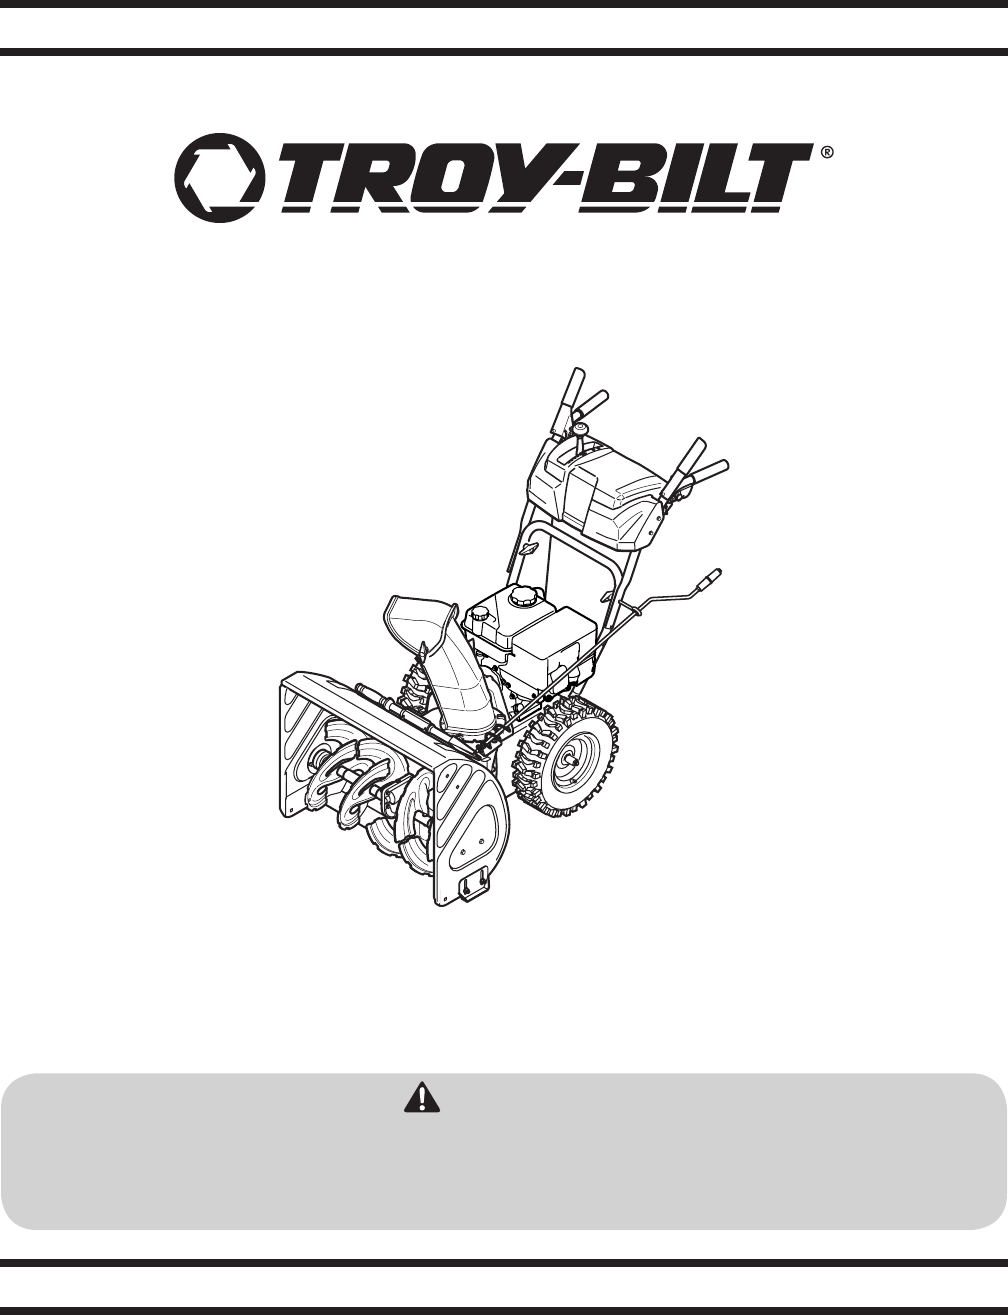 troy bilt snow blower 2410 user guide manualsonline com rh lawnandgarden manualsonline com troy bilt snowblower manuals 2410 troy bilt snowblower manuals 2620